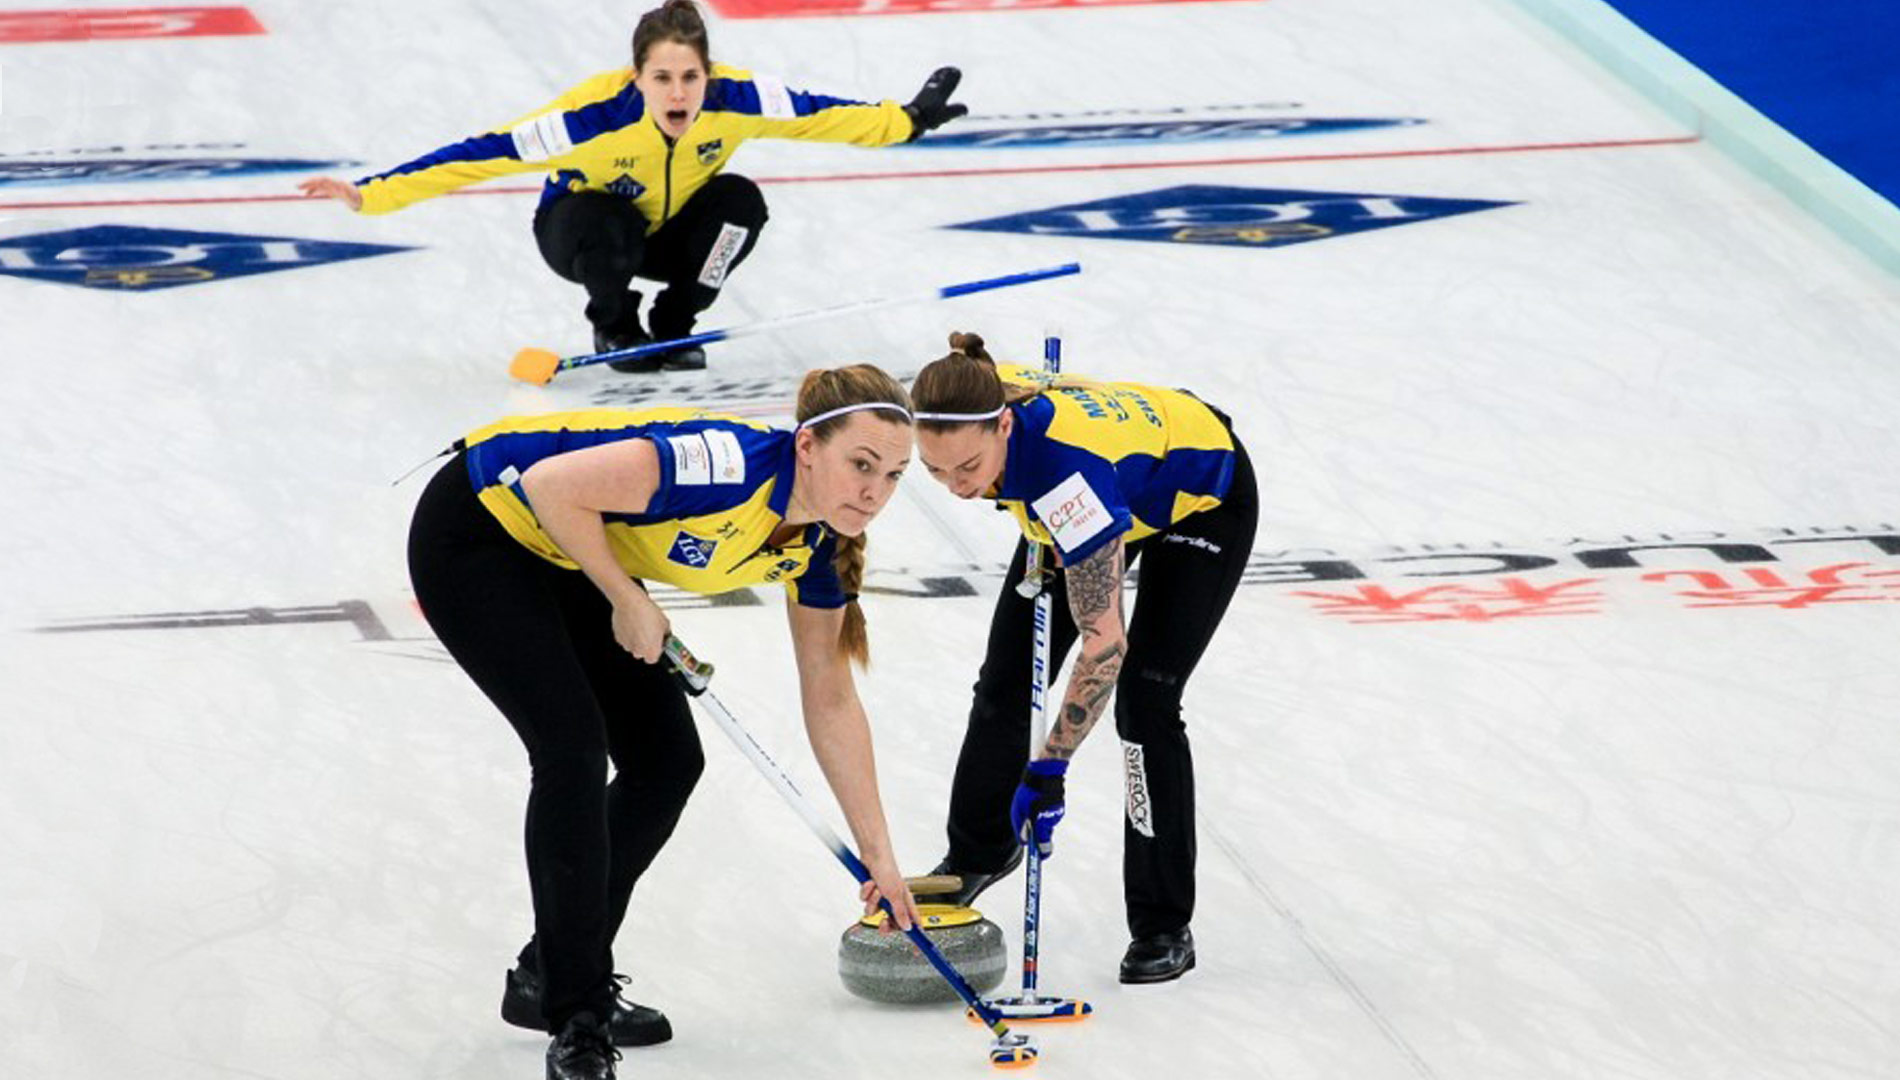 Agnes playing curling with her team. Photo: World Curling Federation